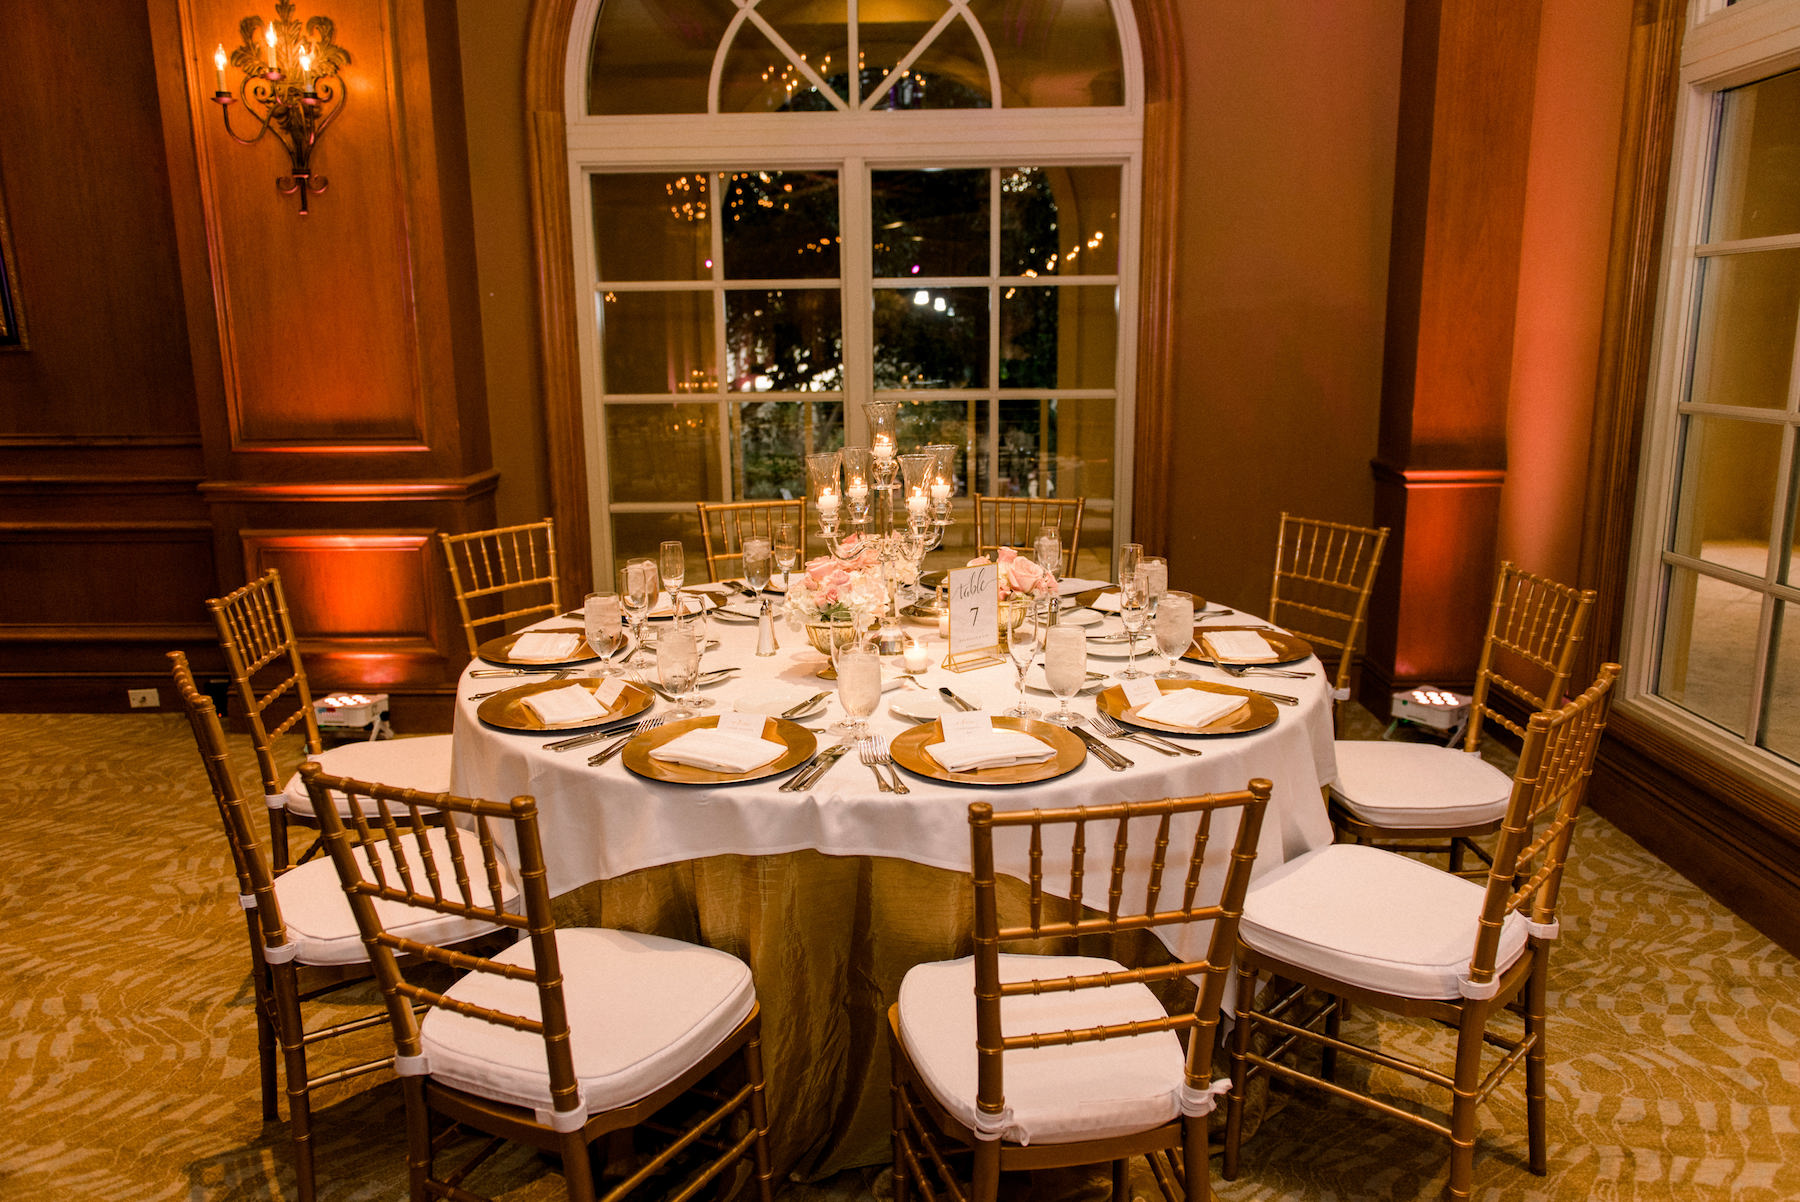 Classic Elegant Ballroom Wedding Reception Decor, Round Table with Gold and White Linens, Gold Chiavari Chairs, Chargers, Tall Candelabra Centerpiece | Hotel Wedding Venue Ritz Carlton Sarasota | Tampa Wedding Planner Special Moments Event Planning